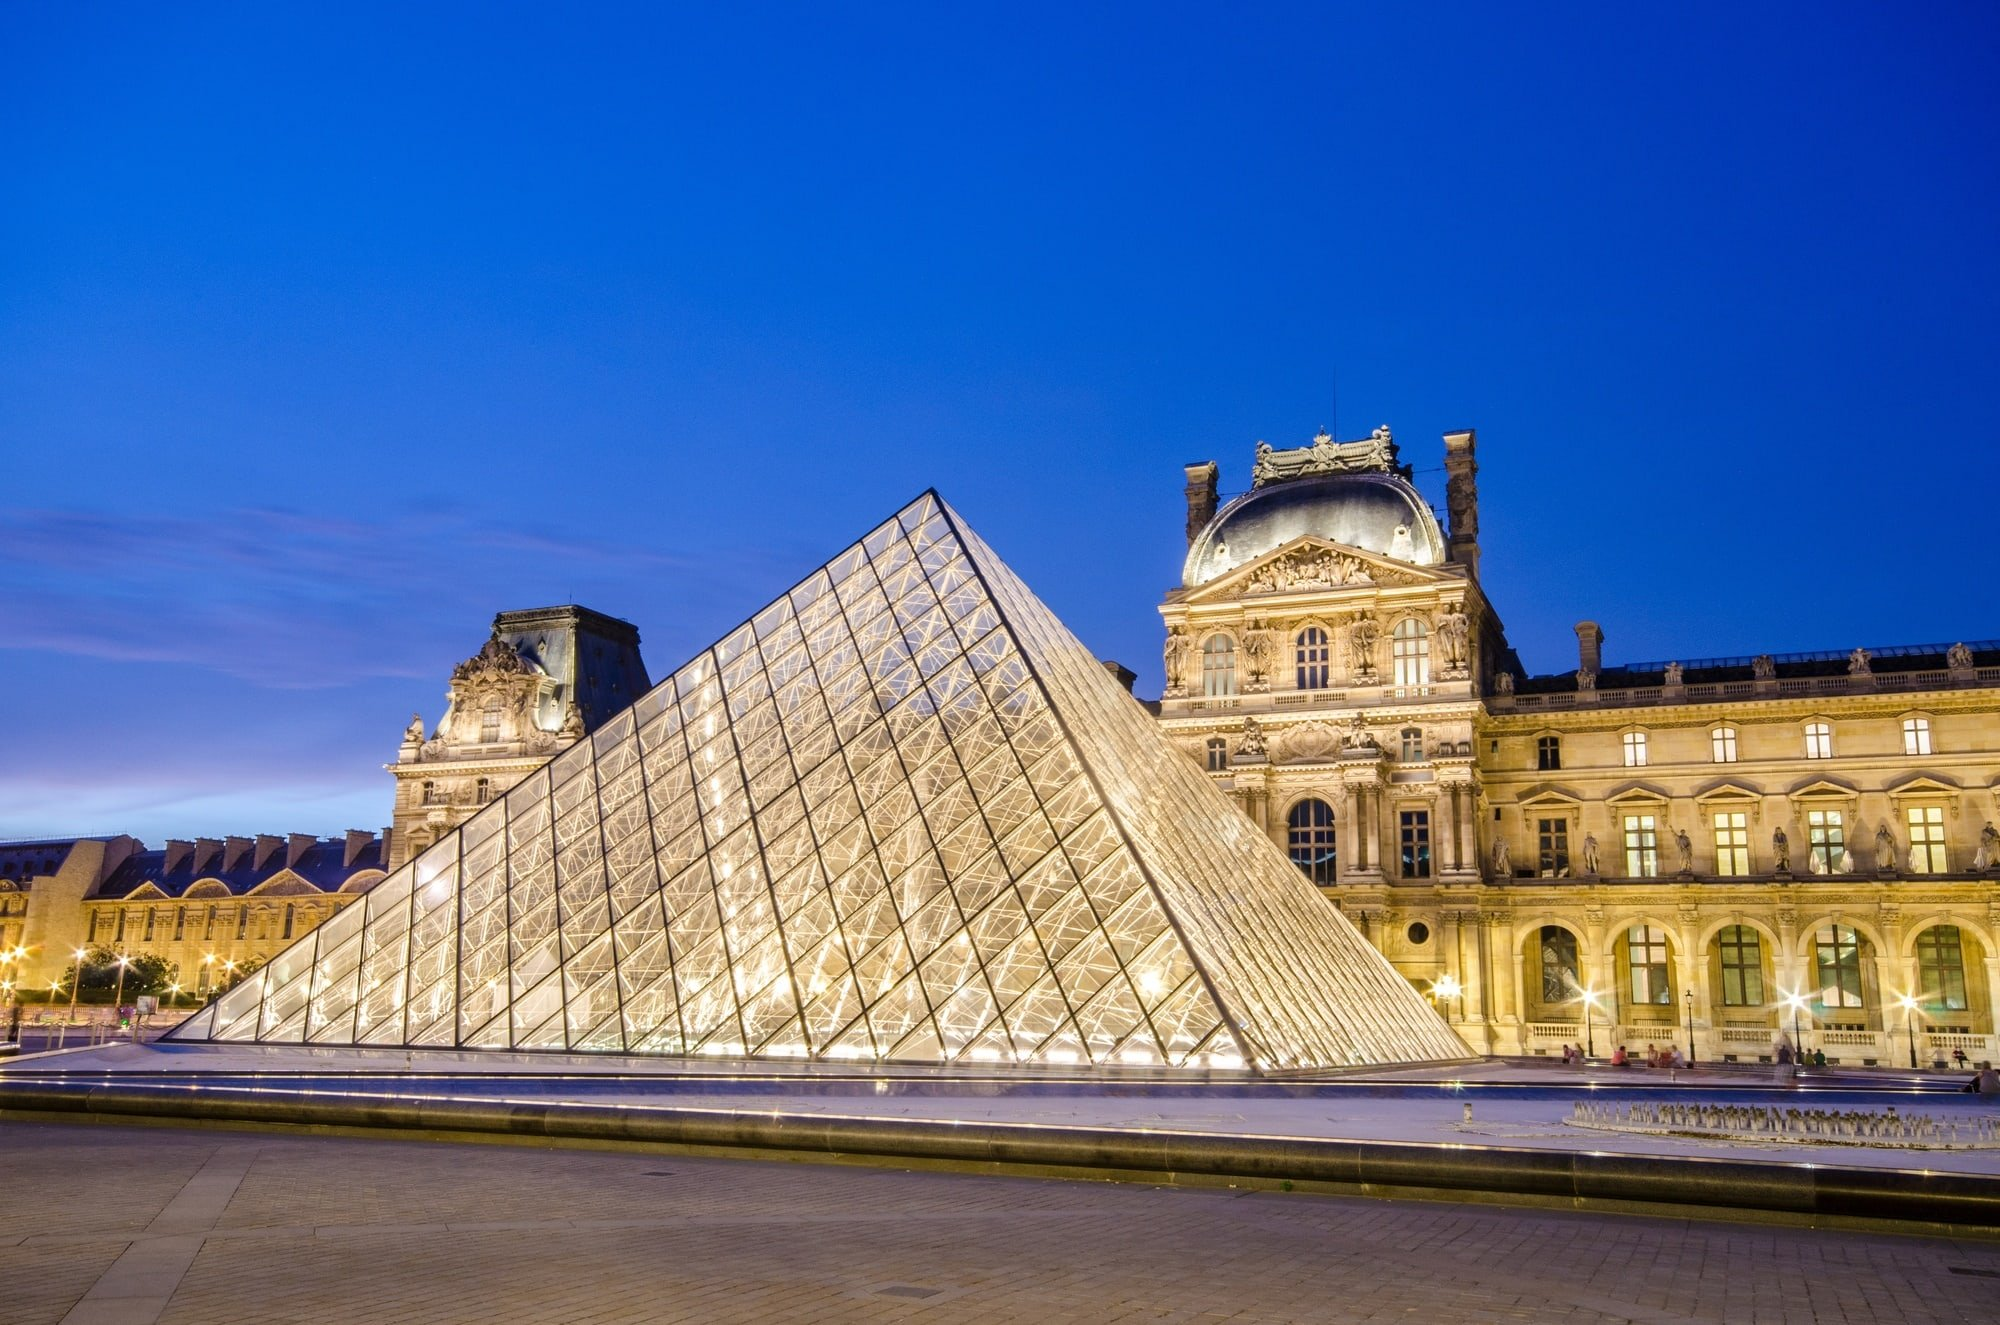 Old and new art collide at the Louvre in Paris